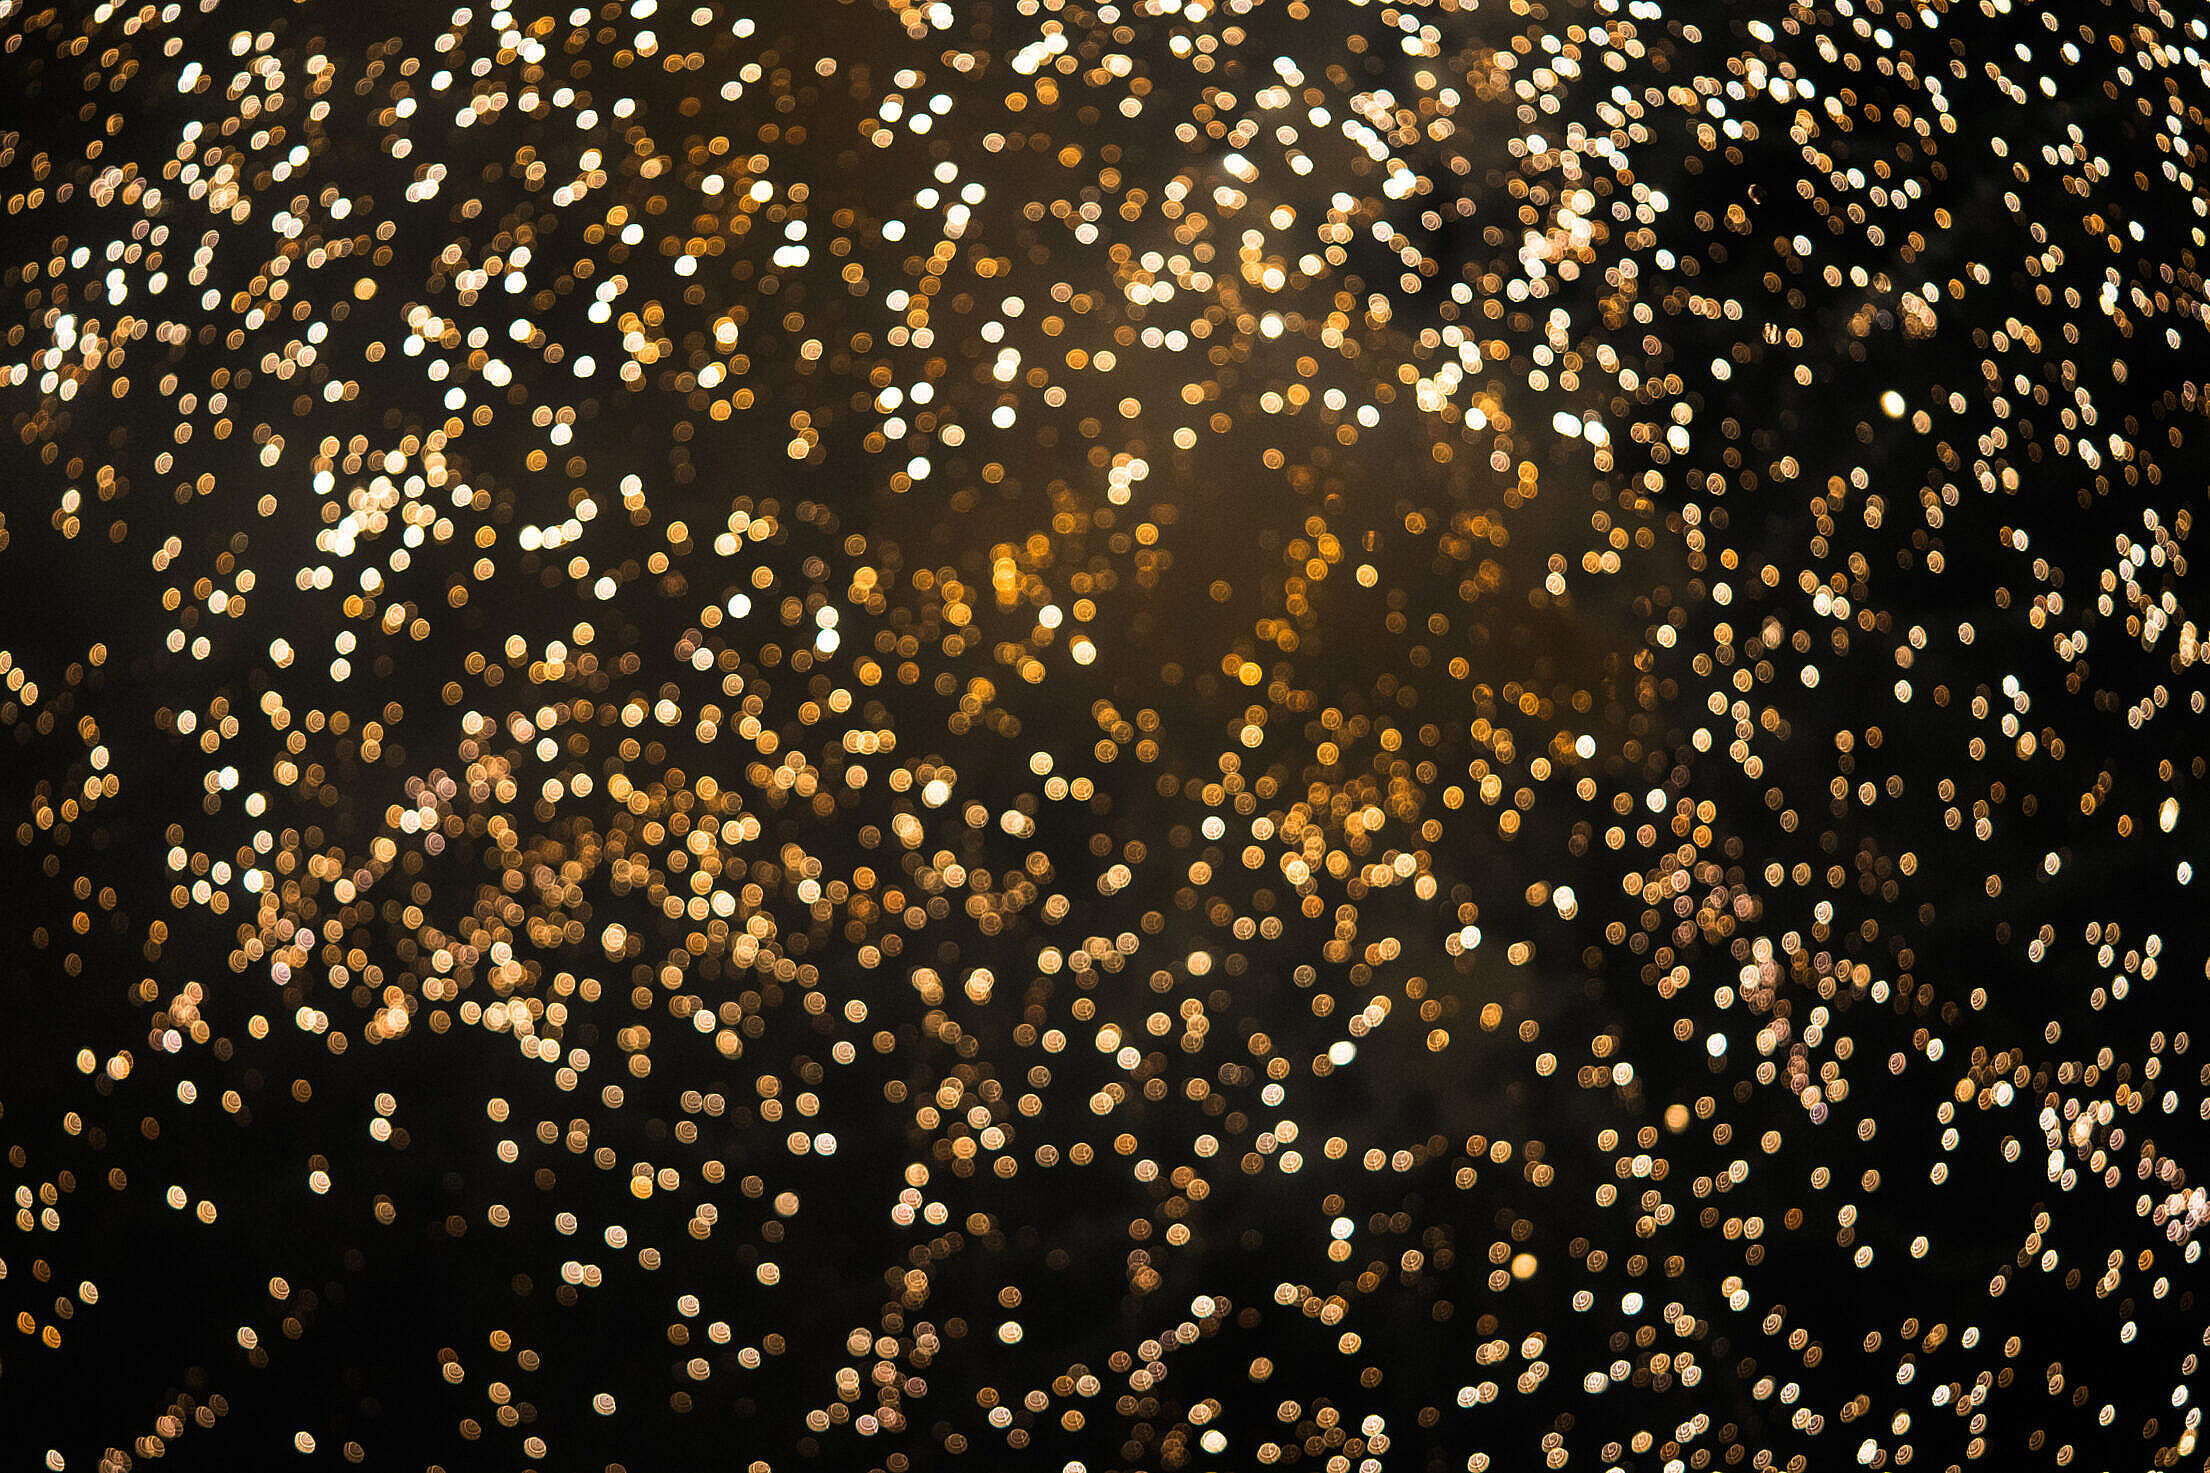 NYE Abstract Fireworks Bokeh Background Free Stock Photo